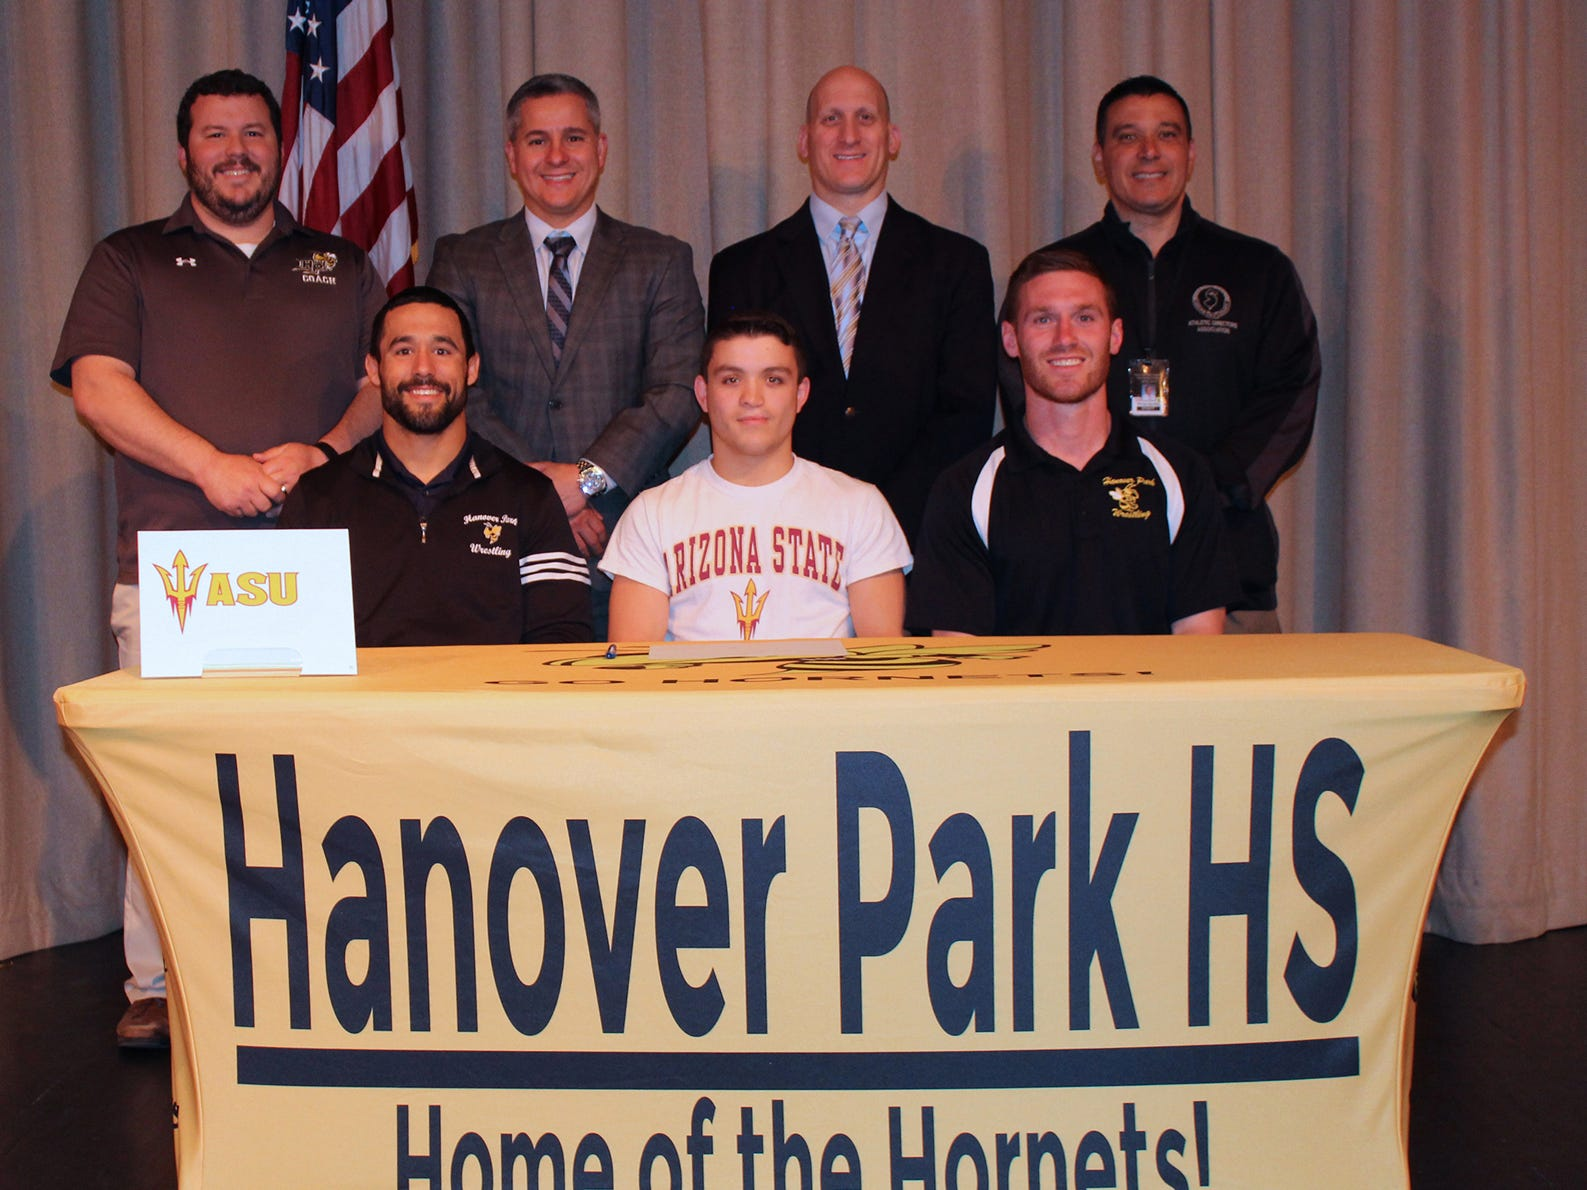 Hanover Park senior Nick Raimo signed a National Letter of Intent with Arizona State wrestling.